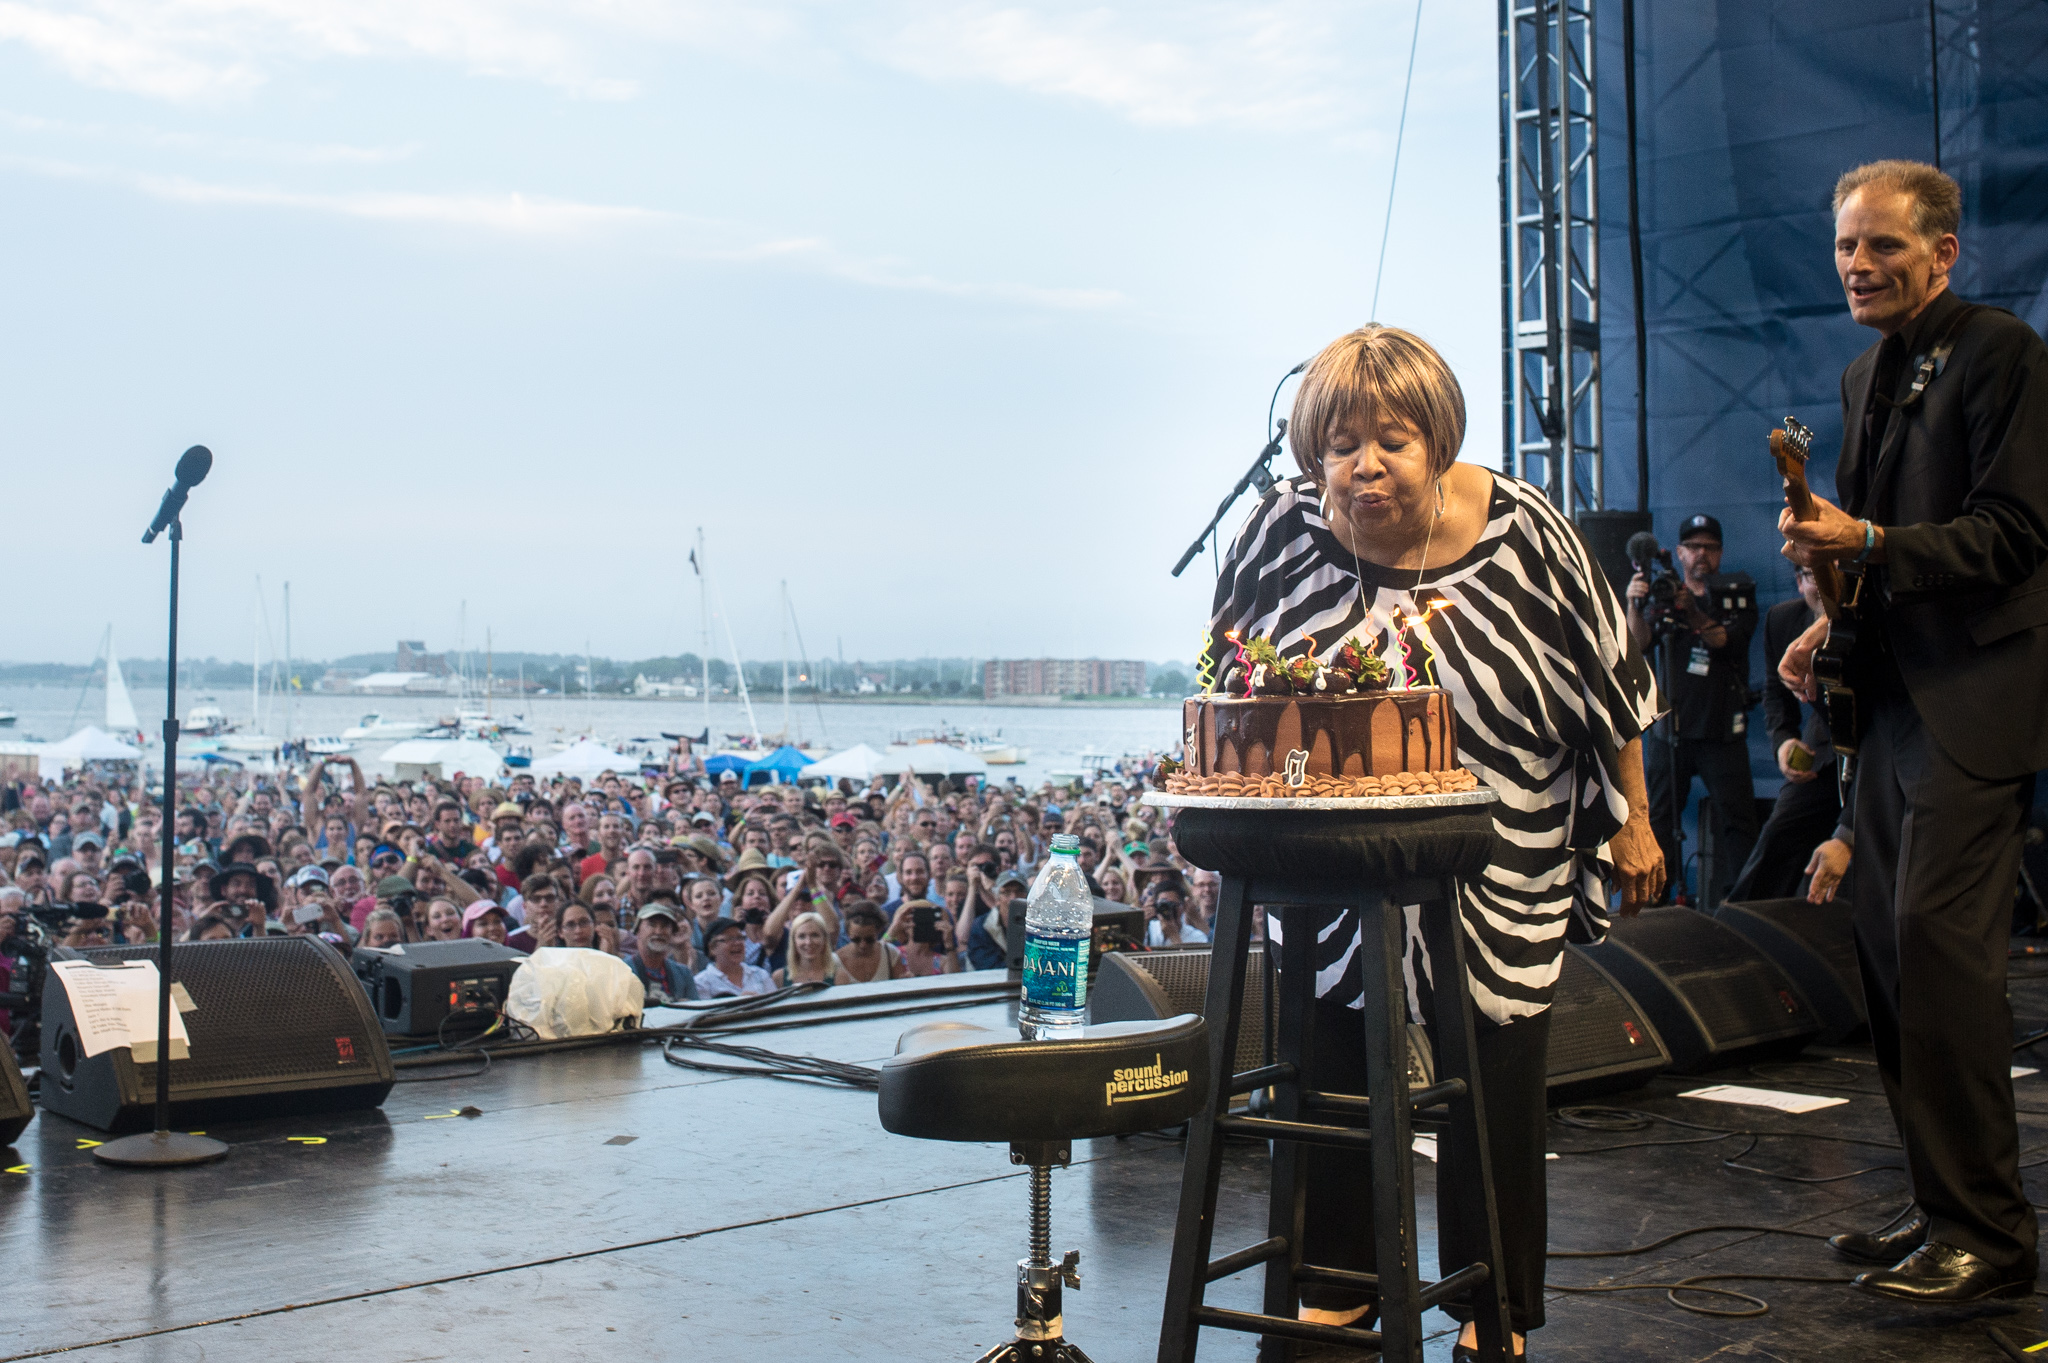 After her festival-closing performance at Newport -- featuring Norah Jones, Spooner Oldham, and members of Lucius, Dawes and Trampled by Turtles -- Mavis Staples celebrated her 75th birthday in style.